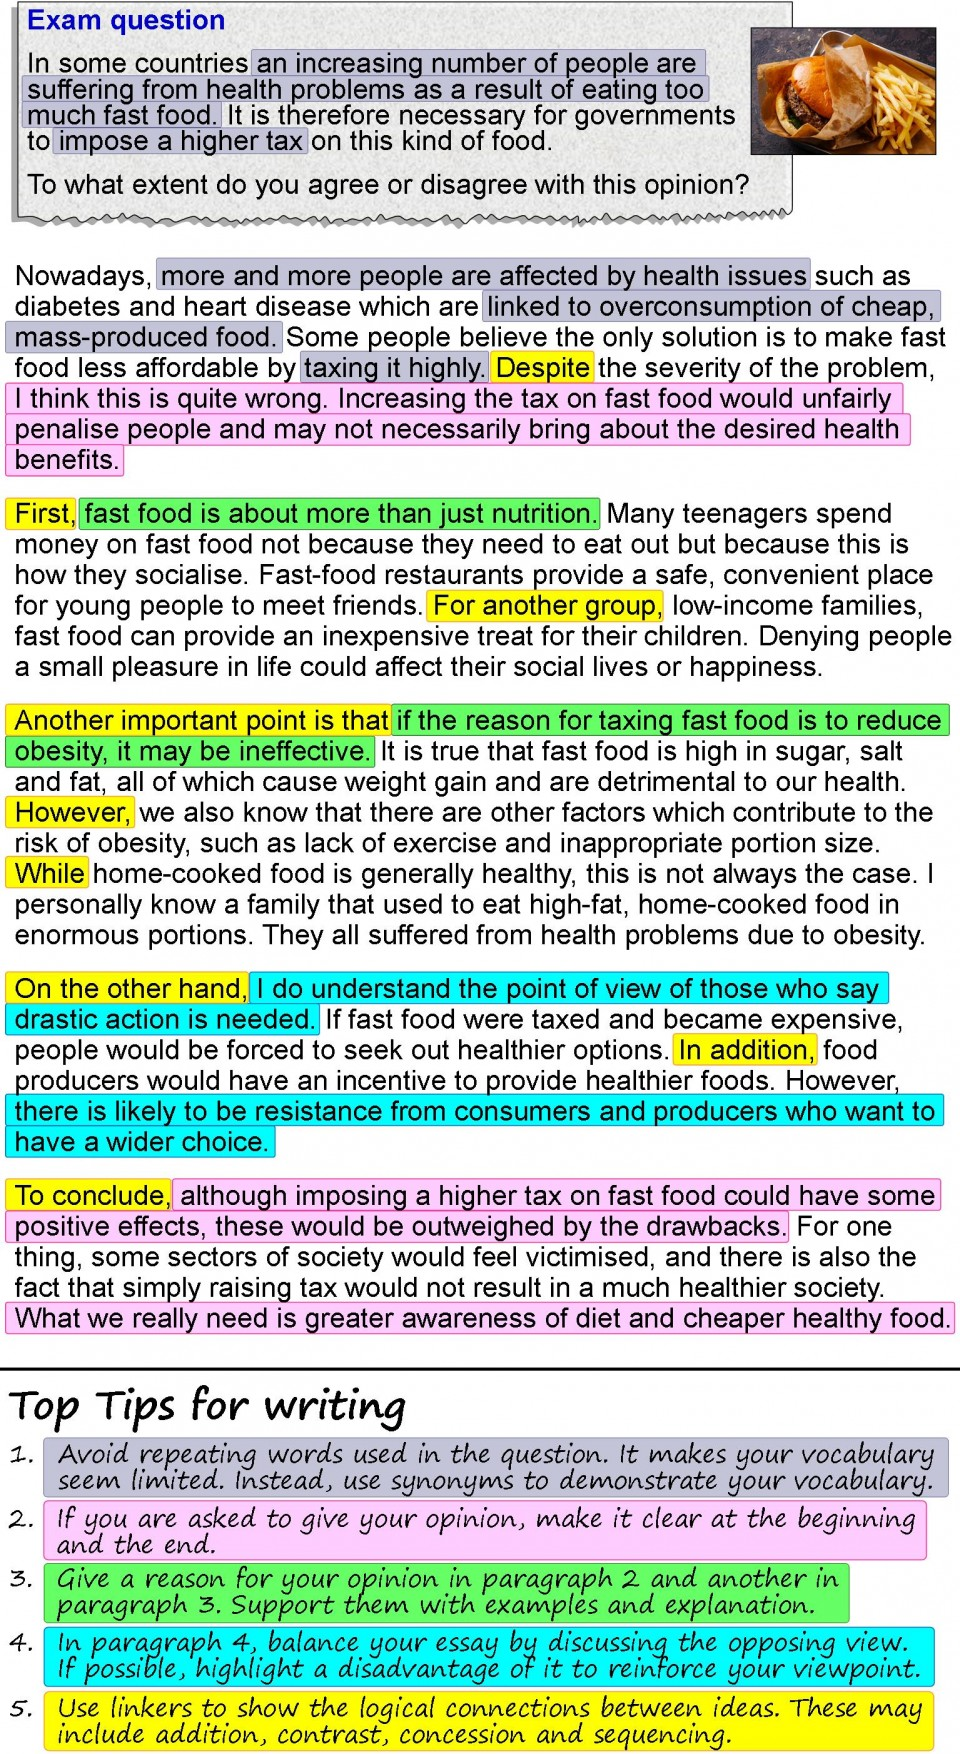 001 An Opinion Essay About Fast 4 Example Stunning Food Nation Outline Titles Introduction 960